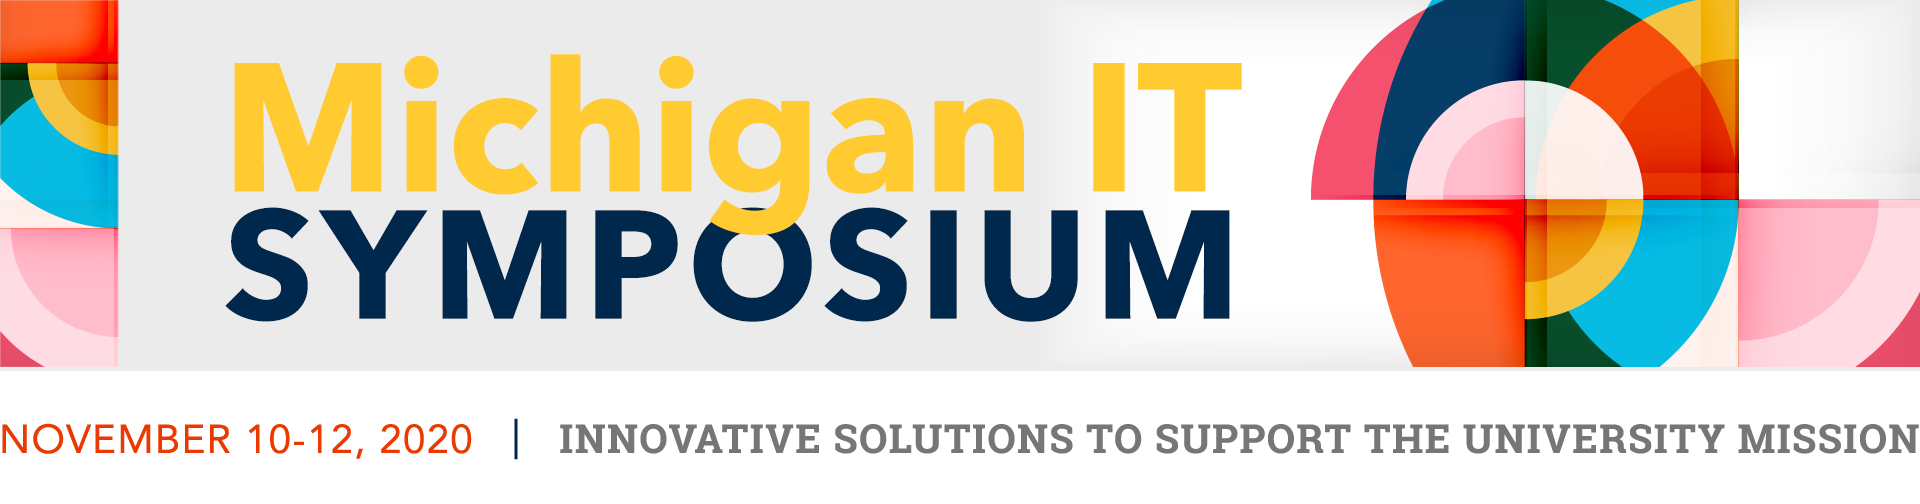 2020 Michigan IT Symposium banner